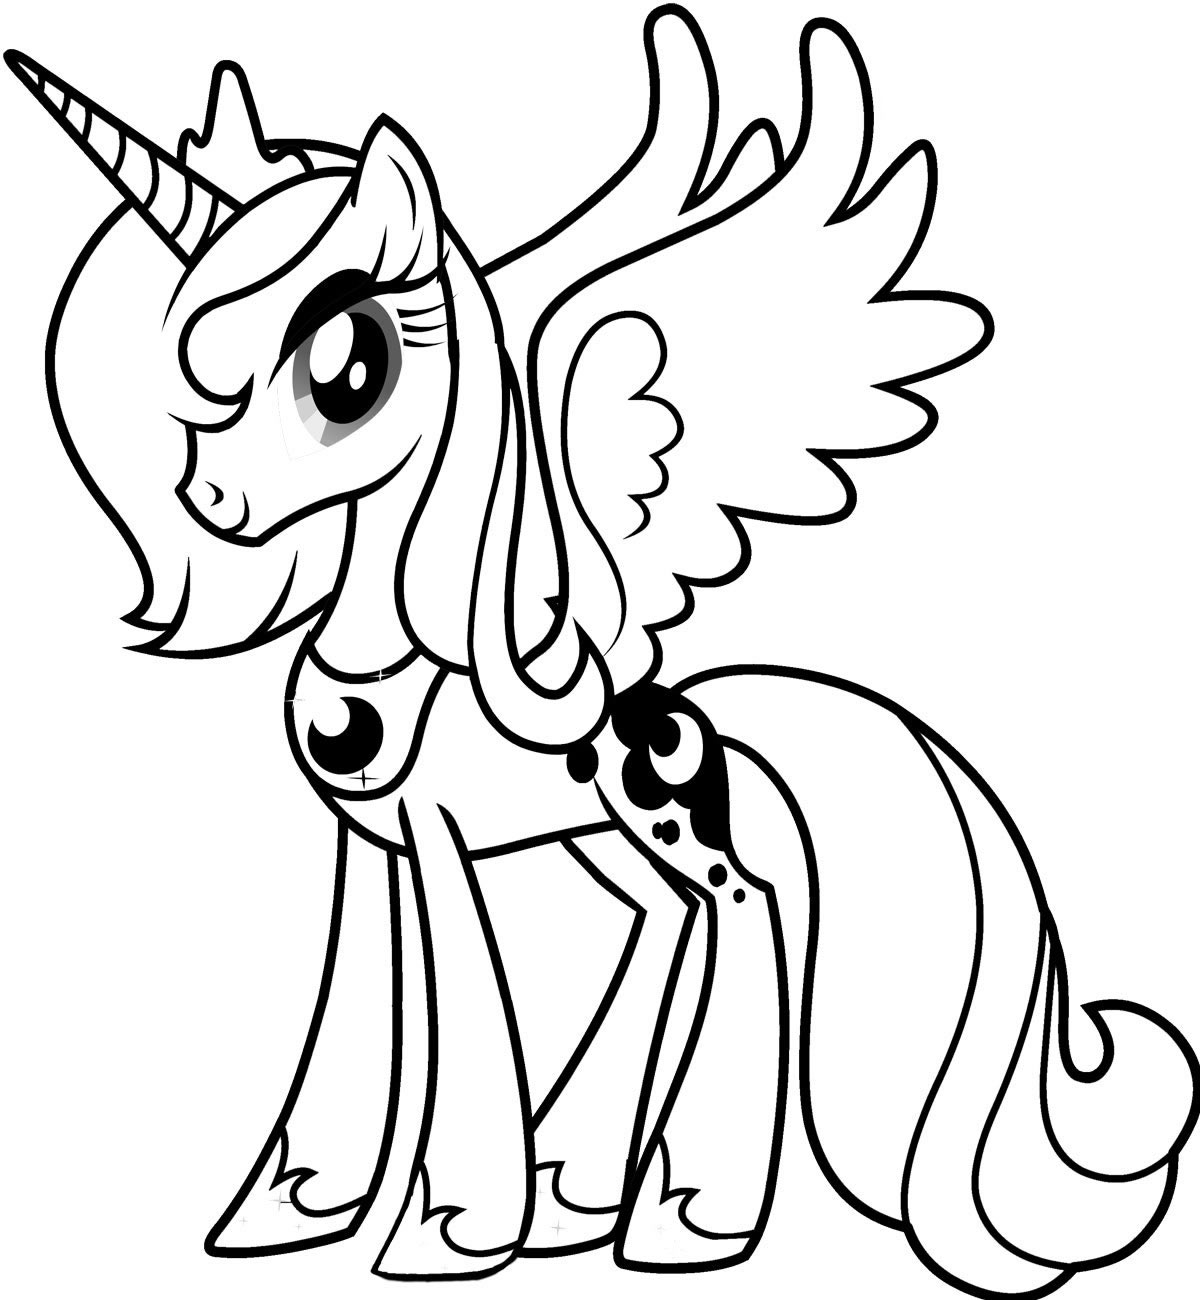 kids pony coloring pages - photo#20